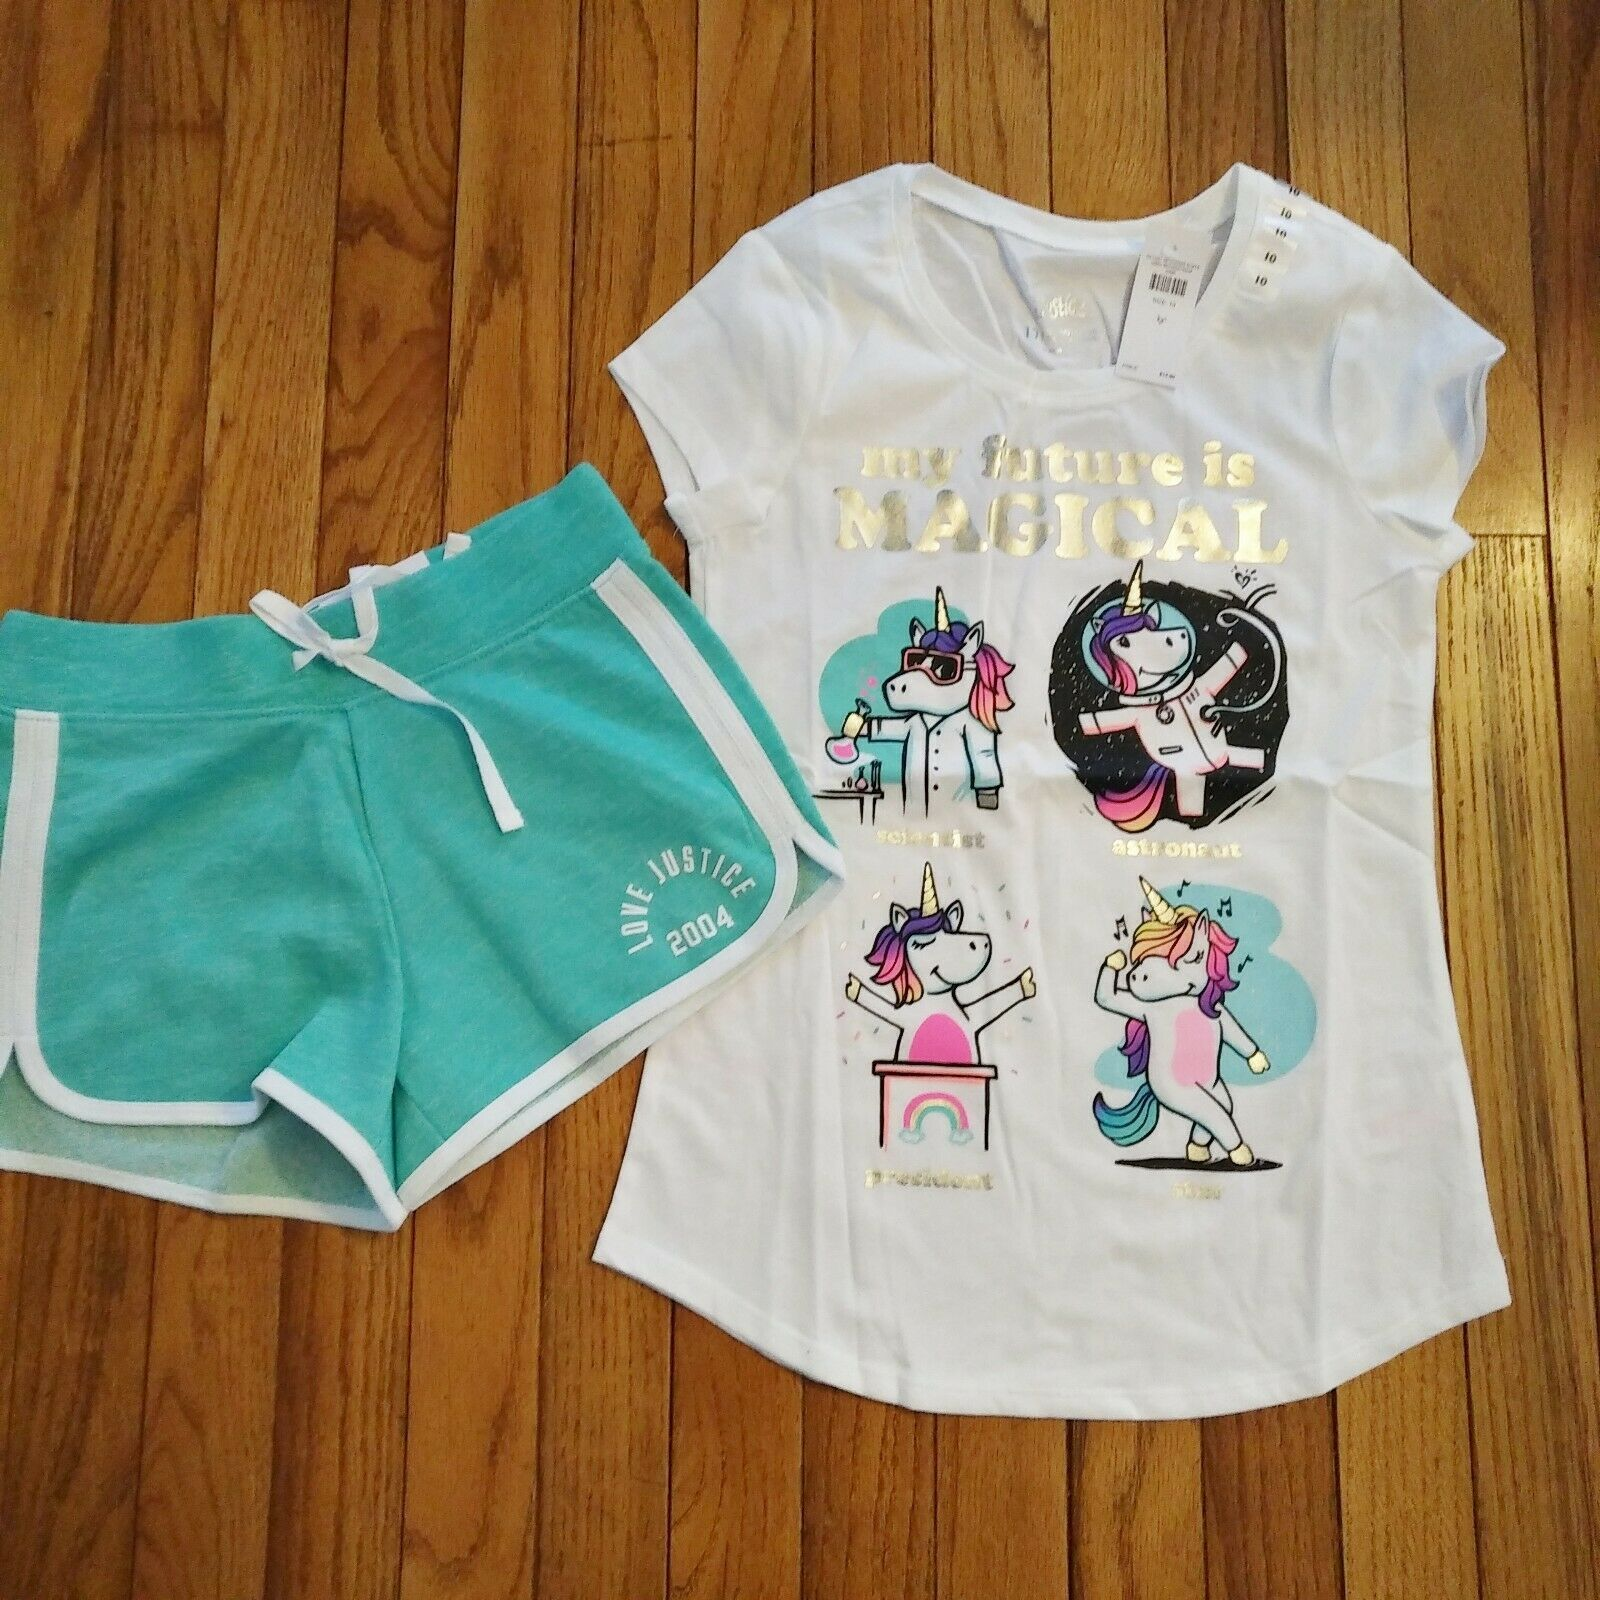 NWT Justice Girls Justice Top//Dolphin Shorts Size 6 7 8 10 12 14 16